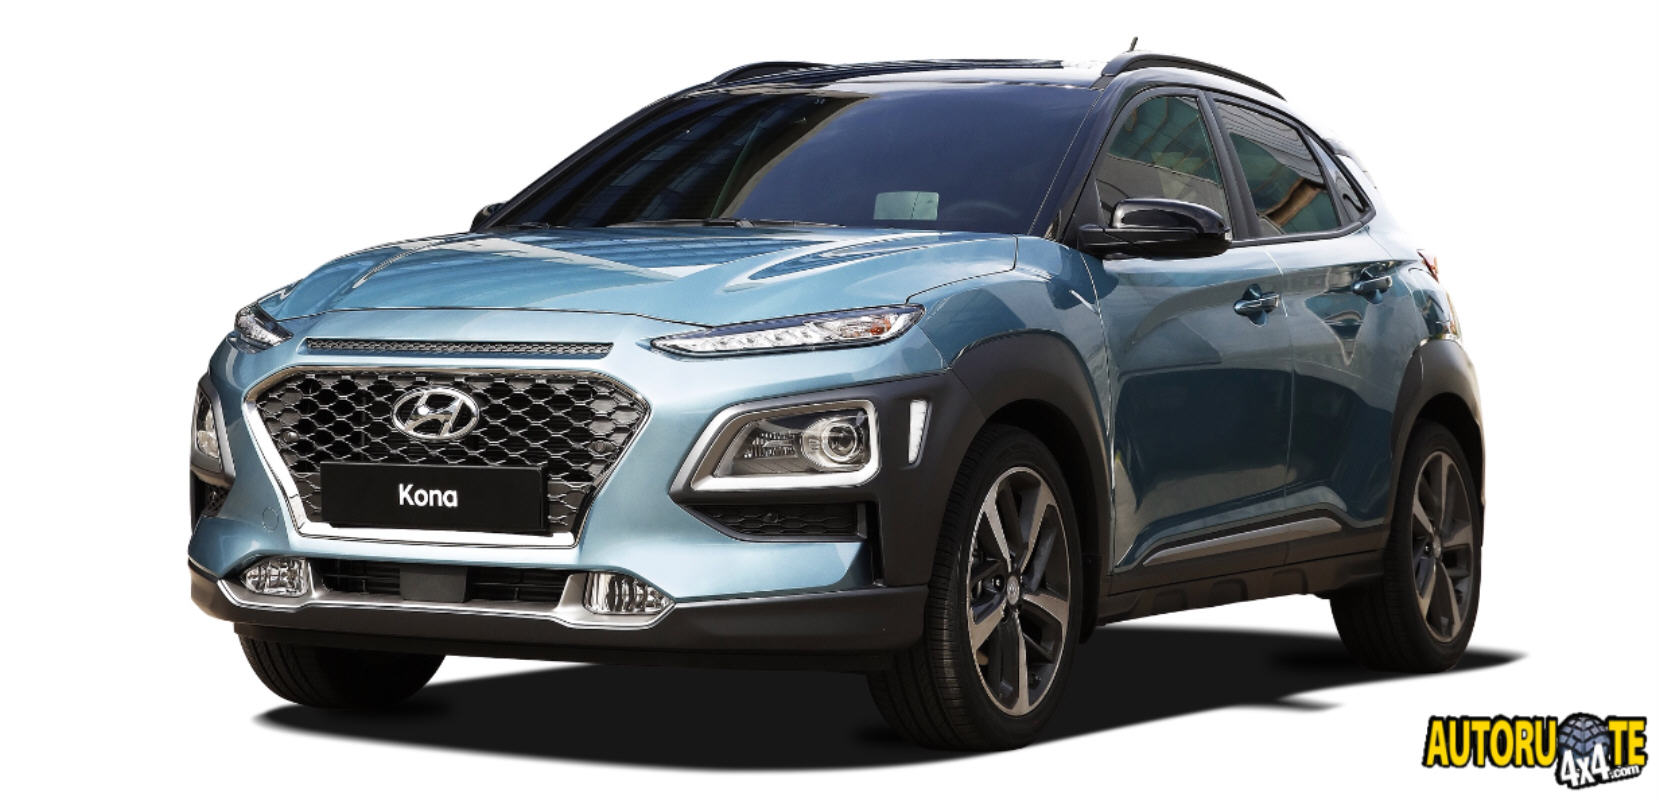 Hyundai Kona: CUV of the Year 2019